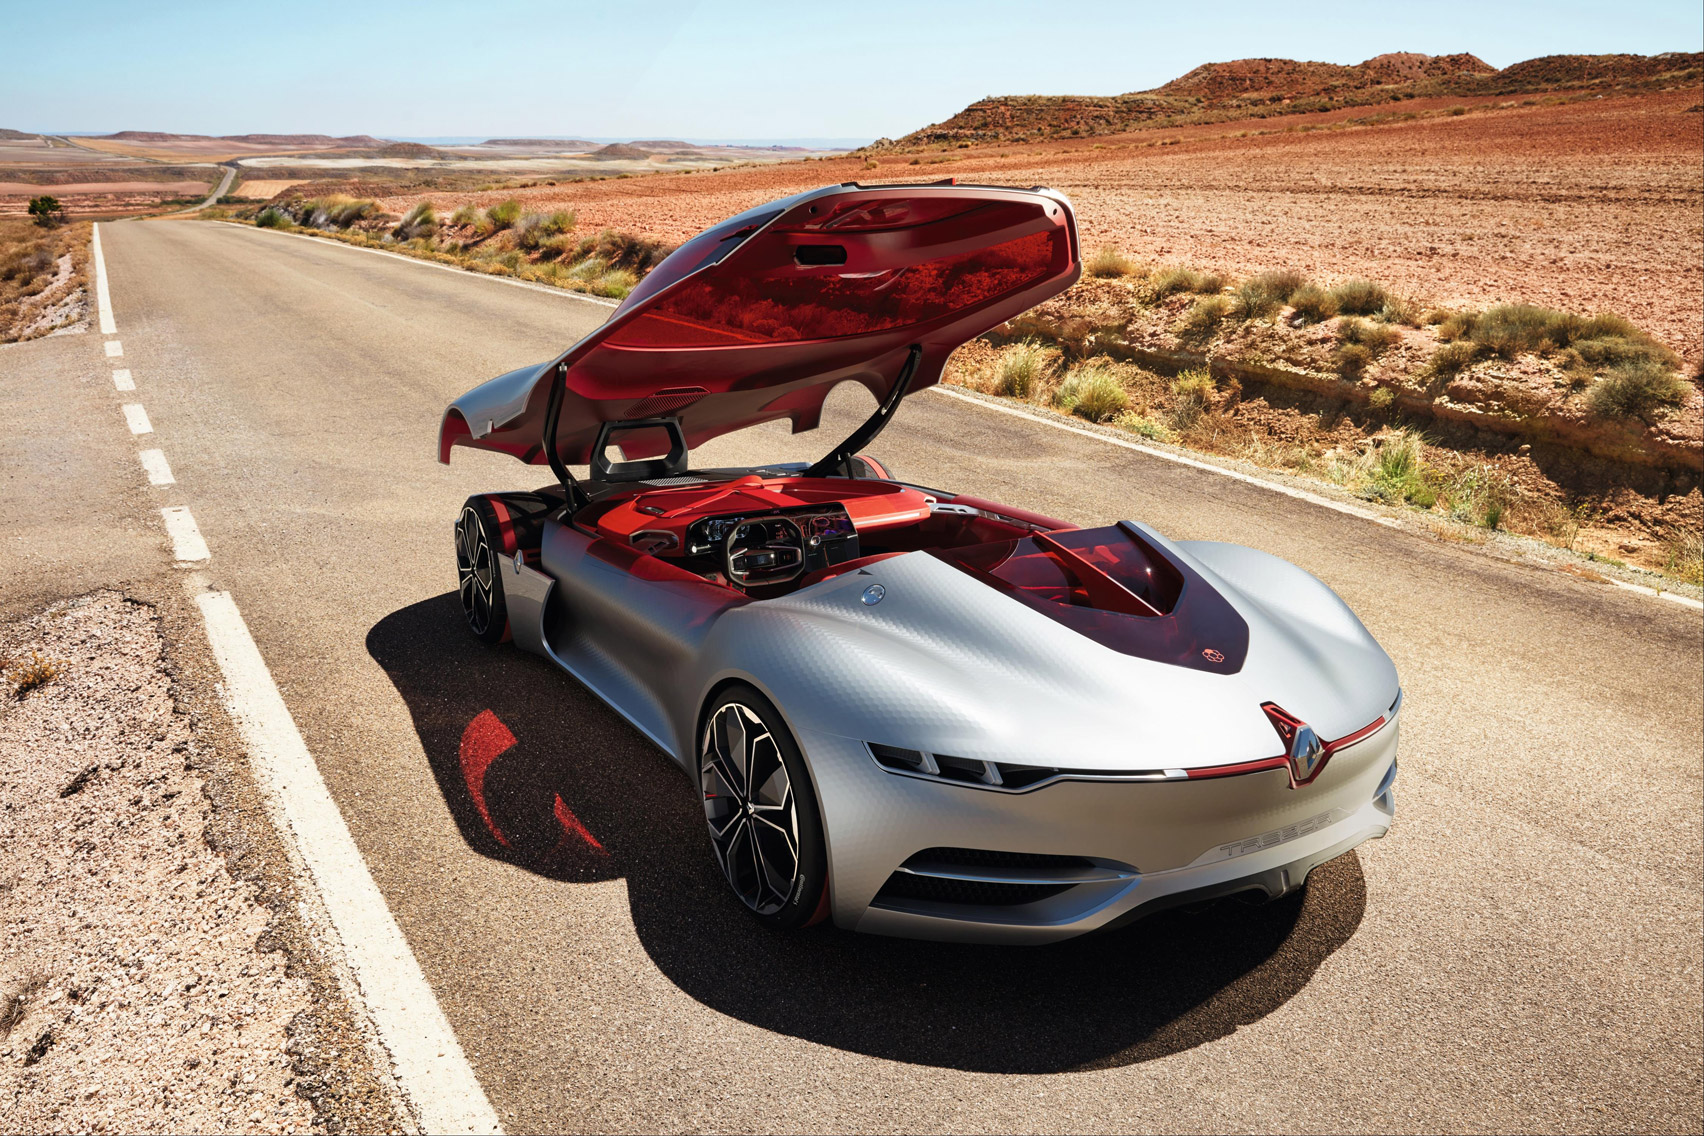 Renault Concept Car Uses Sliding Roof Instead Of Doors Creating A Water Catching Bucket On Wheels Id Blog